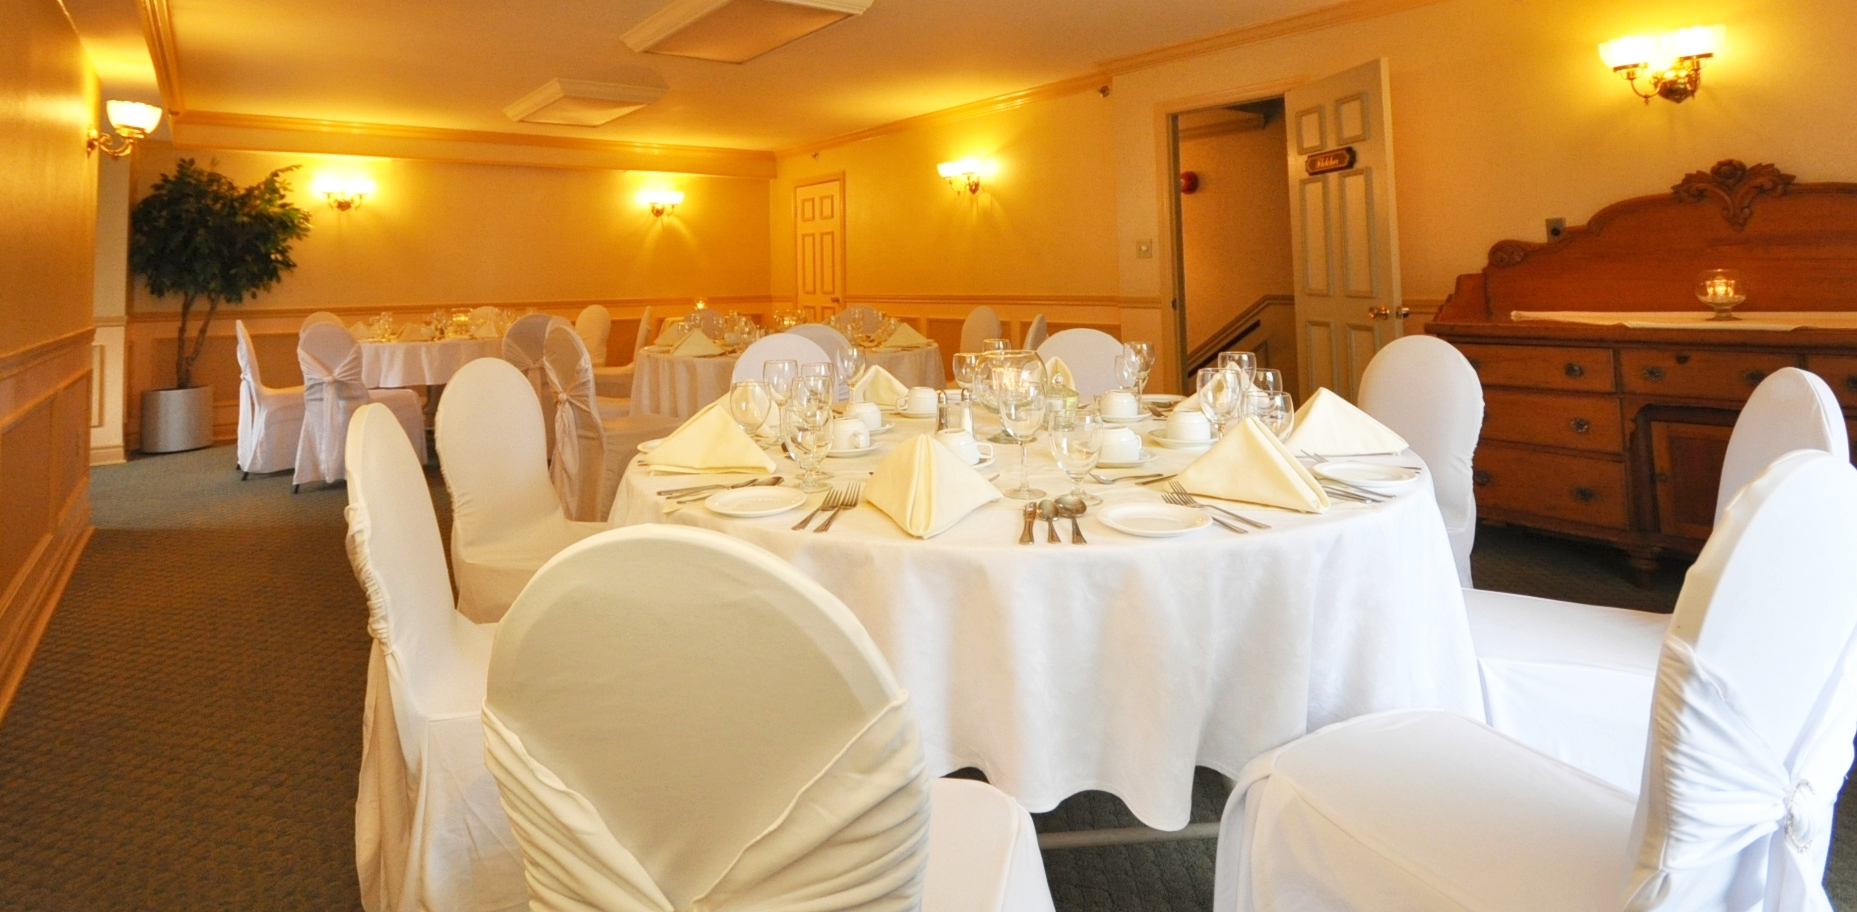 Fletcher seats 20 to 30 guests